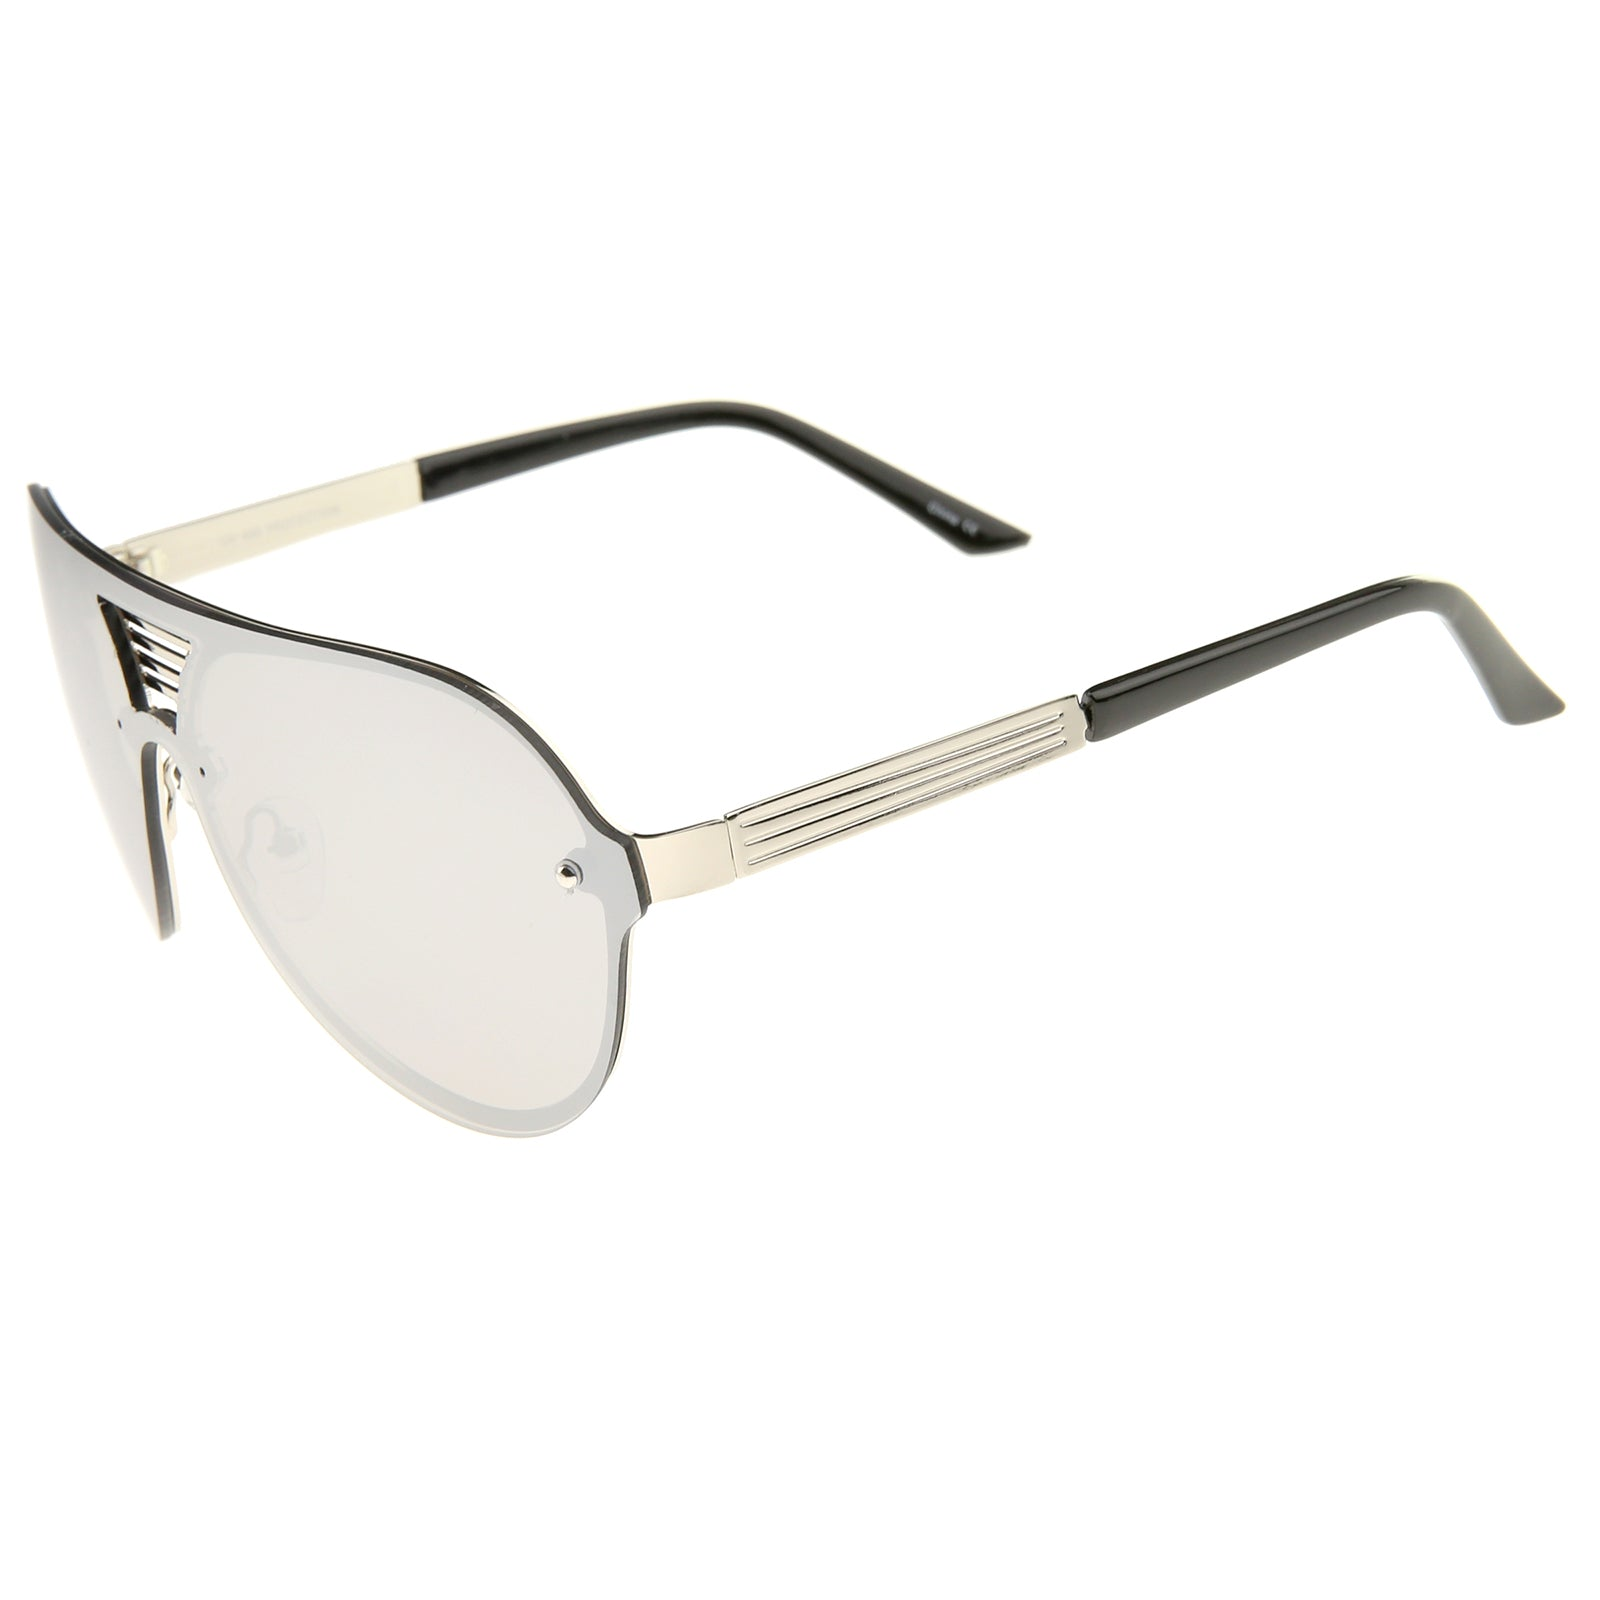 Rimless Flat Top Metal Temple Iridescent Mirror Lens Aviator Sunglasses 59mm - sunglass.la - 3